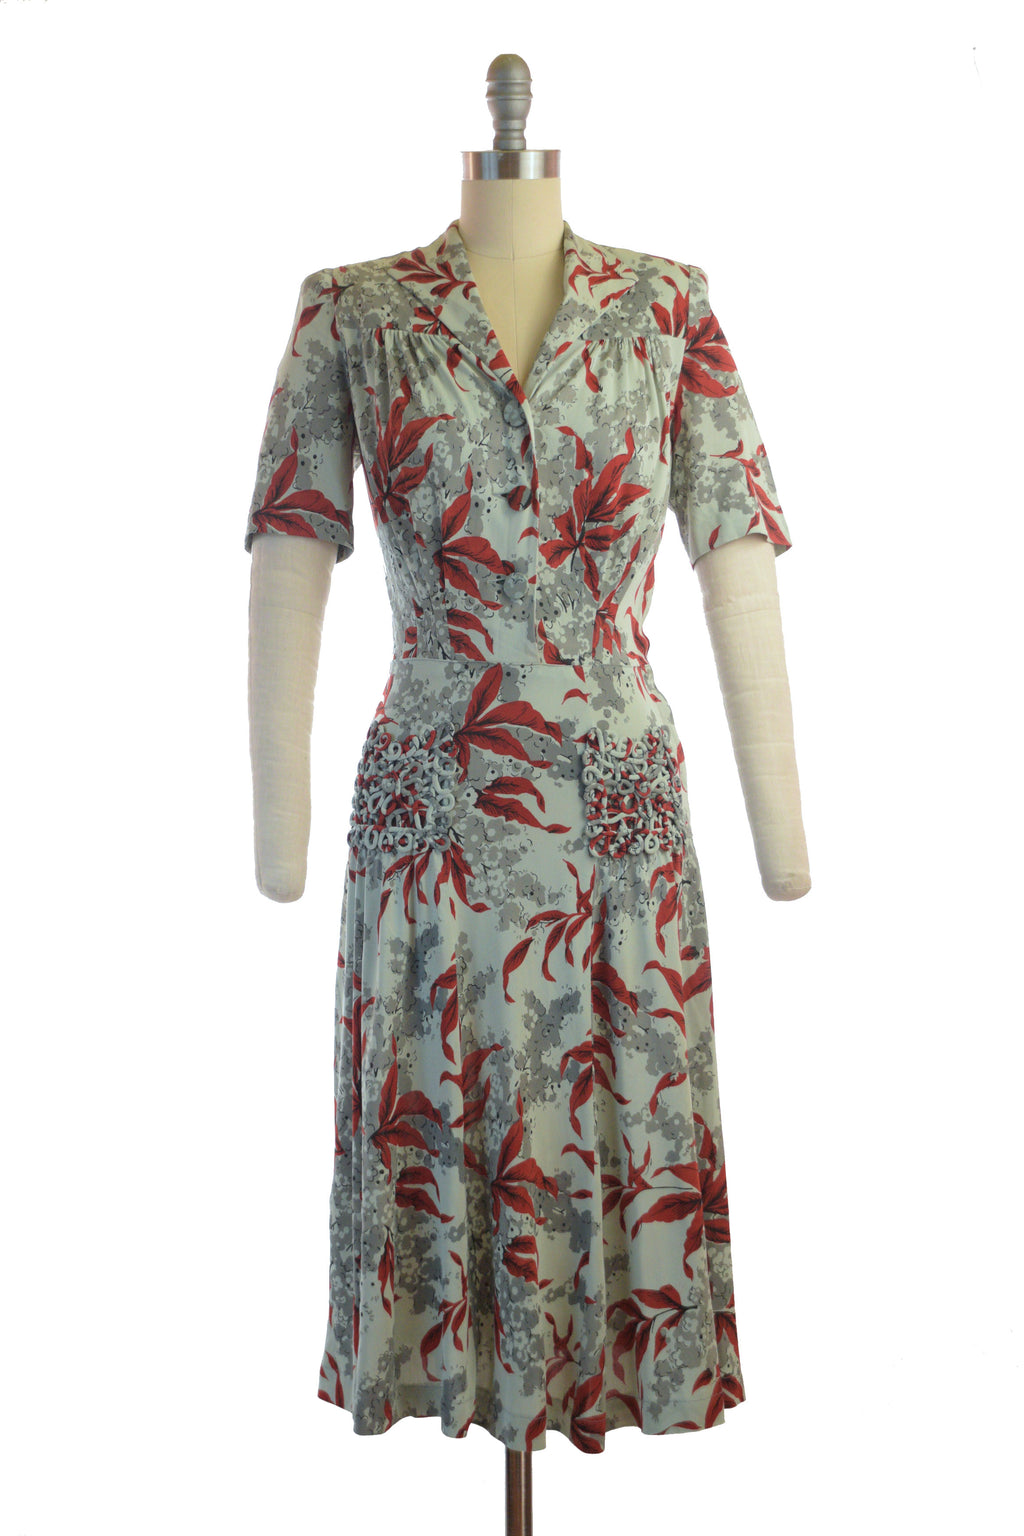 Fantastic Late 1930s Rayon Jersey Day Dress in Grey-Green and Rust Orange with Piping Lace Pockets